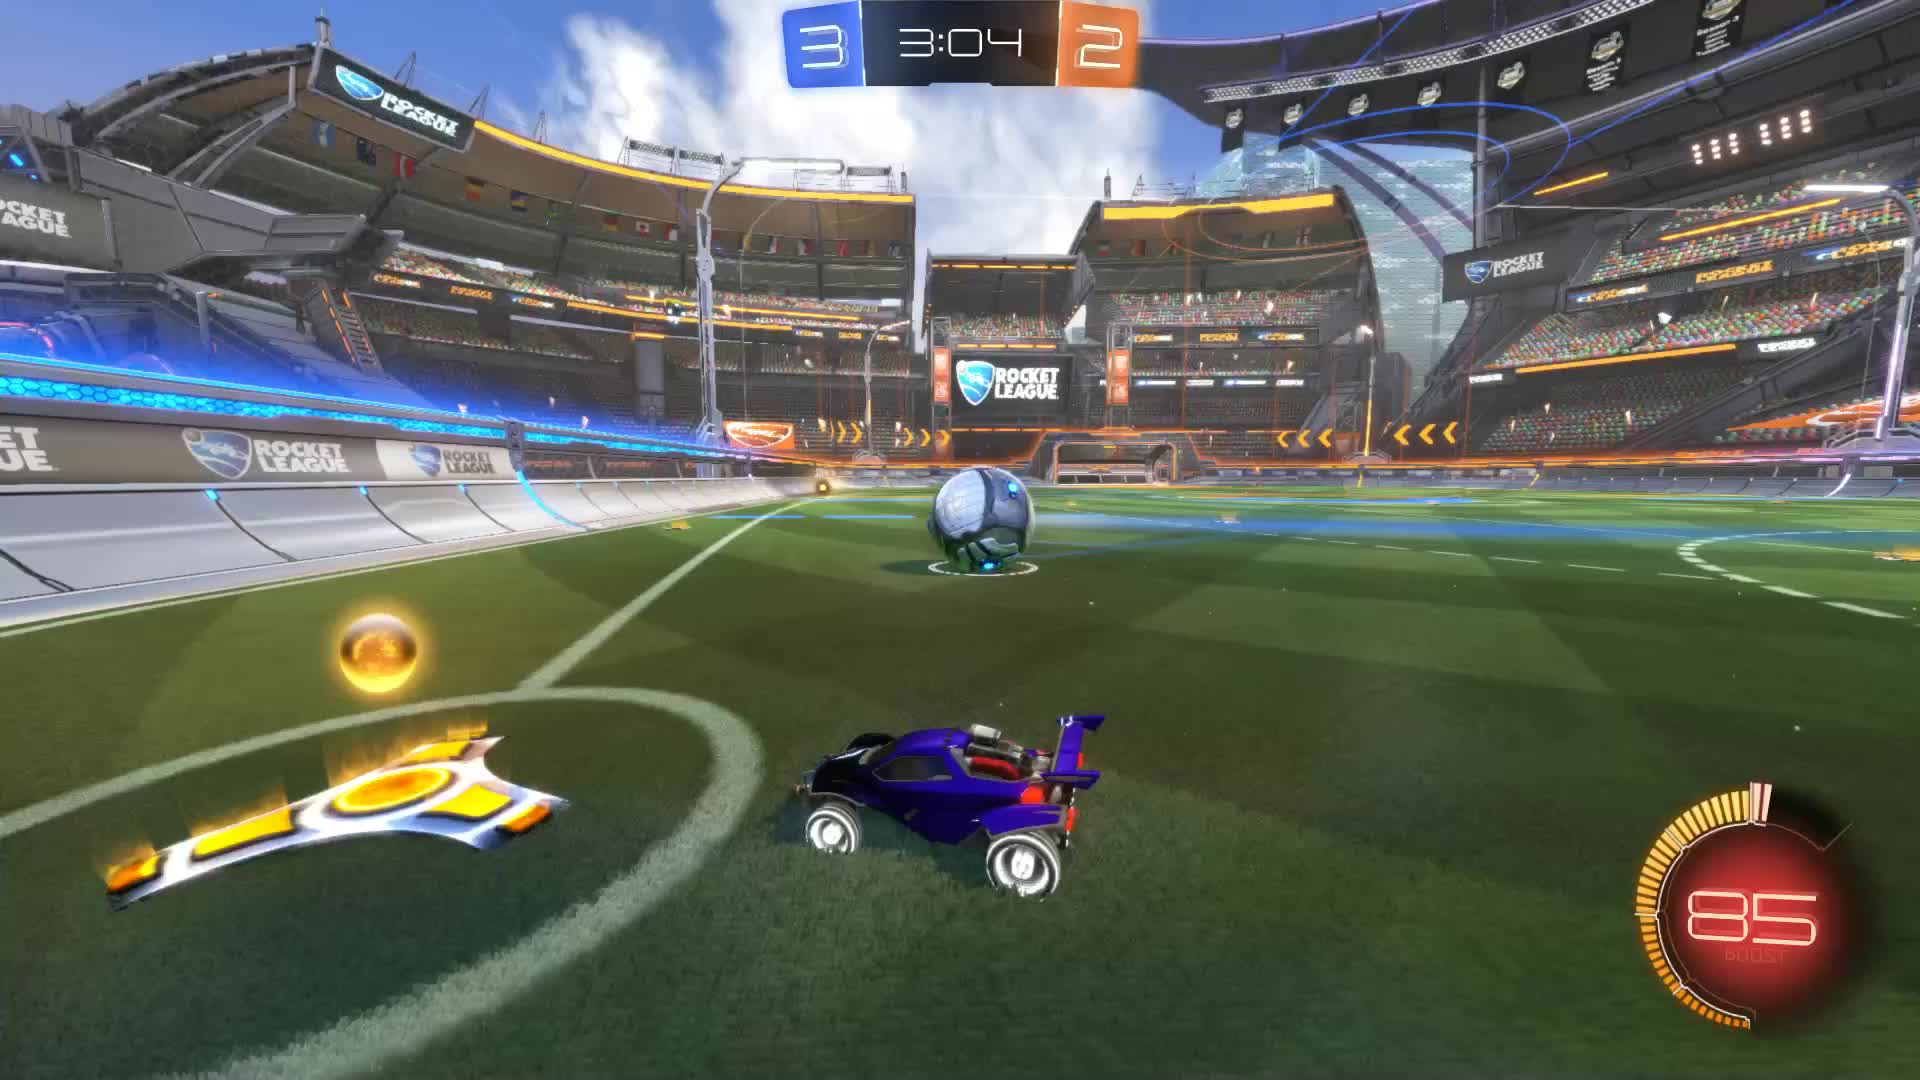 Gif Your Game, GifYourGame, Goal, KeeRally, Rocket League, RocketLeague, Goal 6: KeeRally GIFs